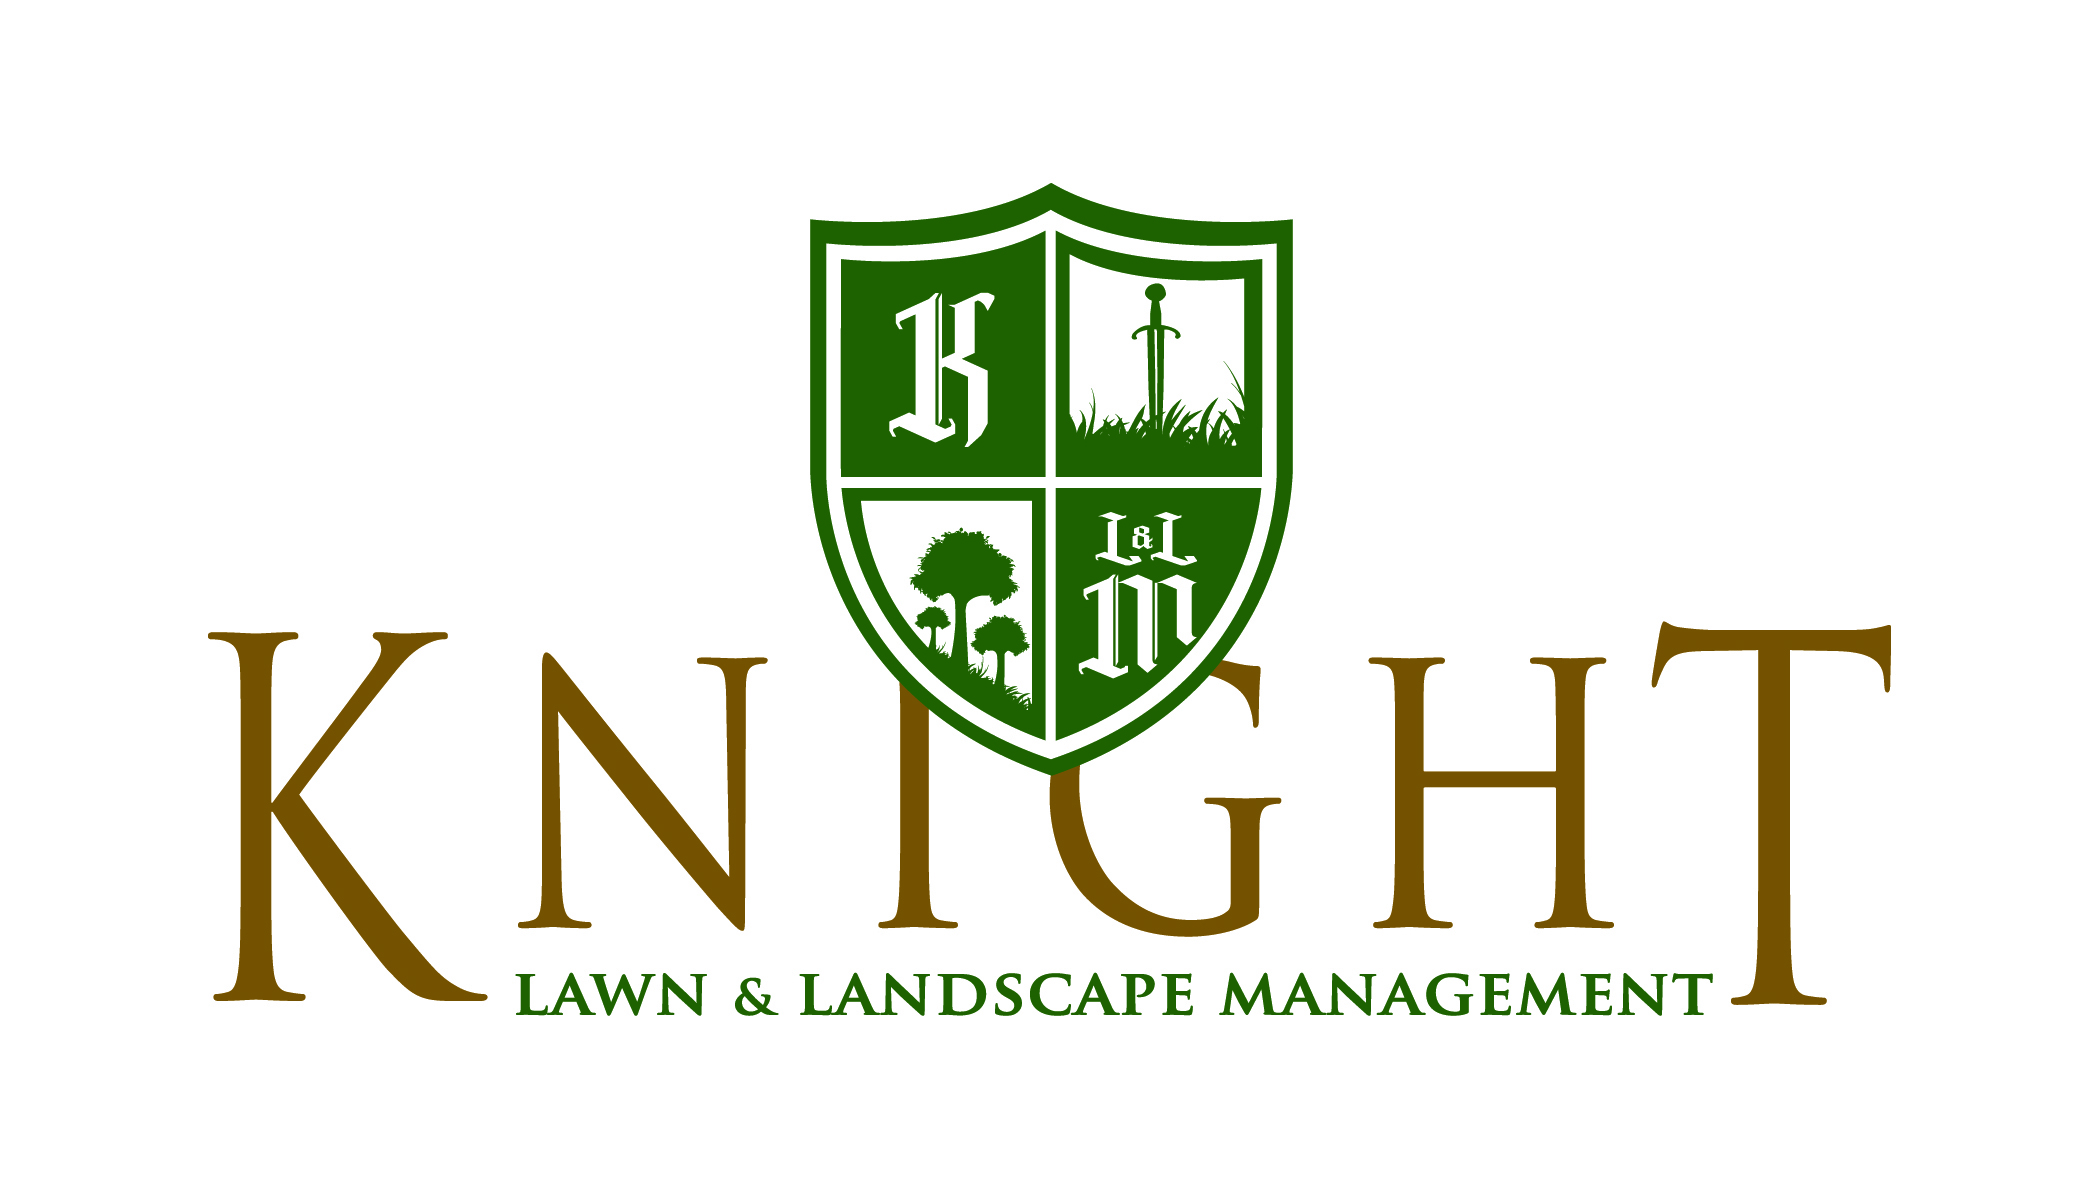 Knight_Lawn&Land_logo.jpg